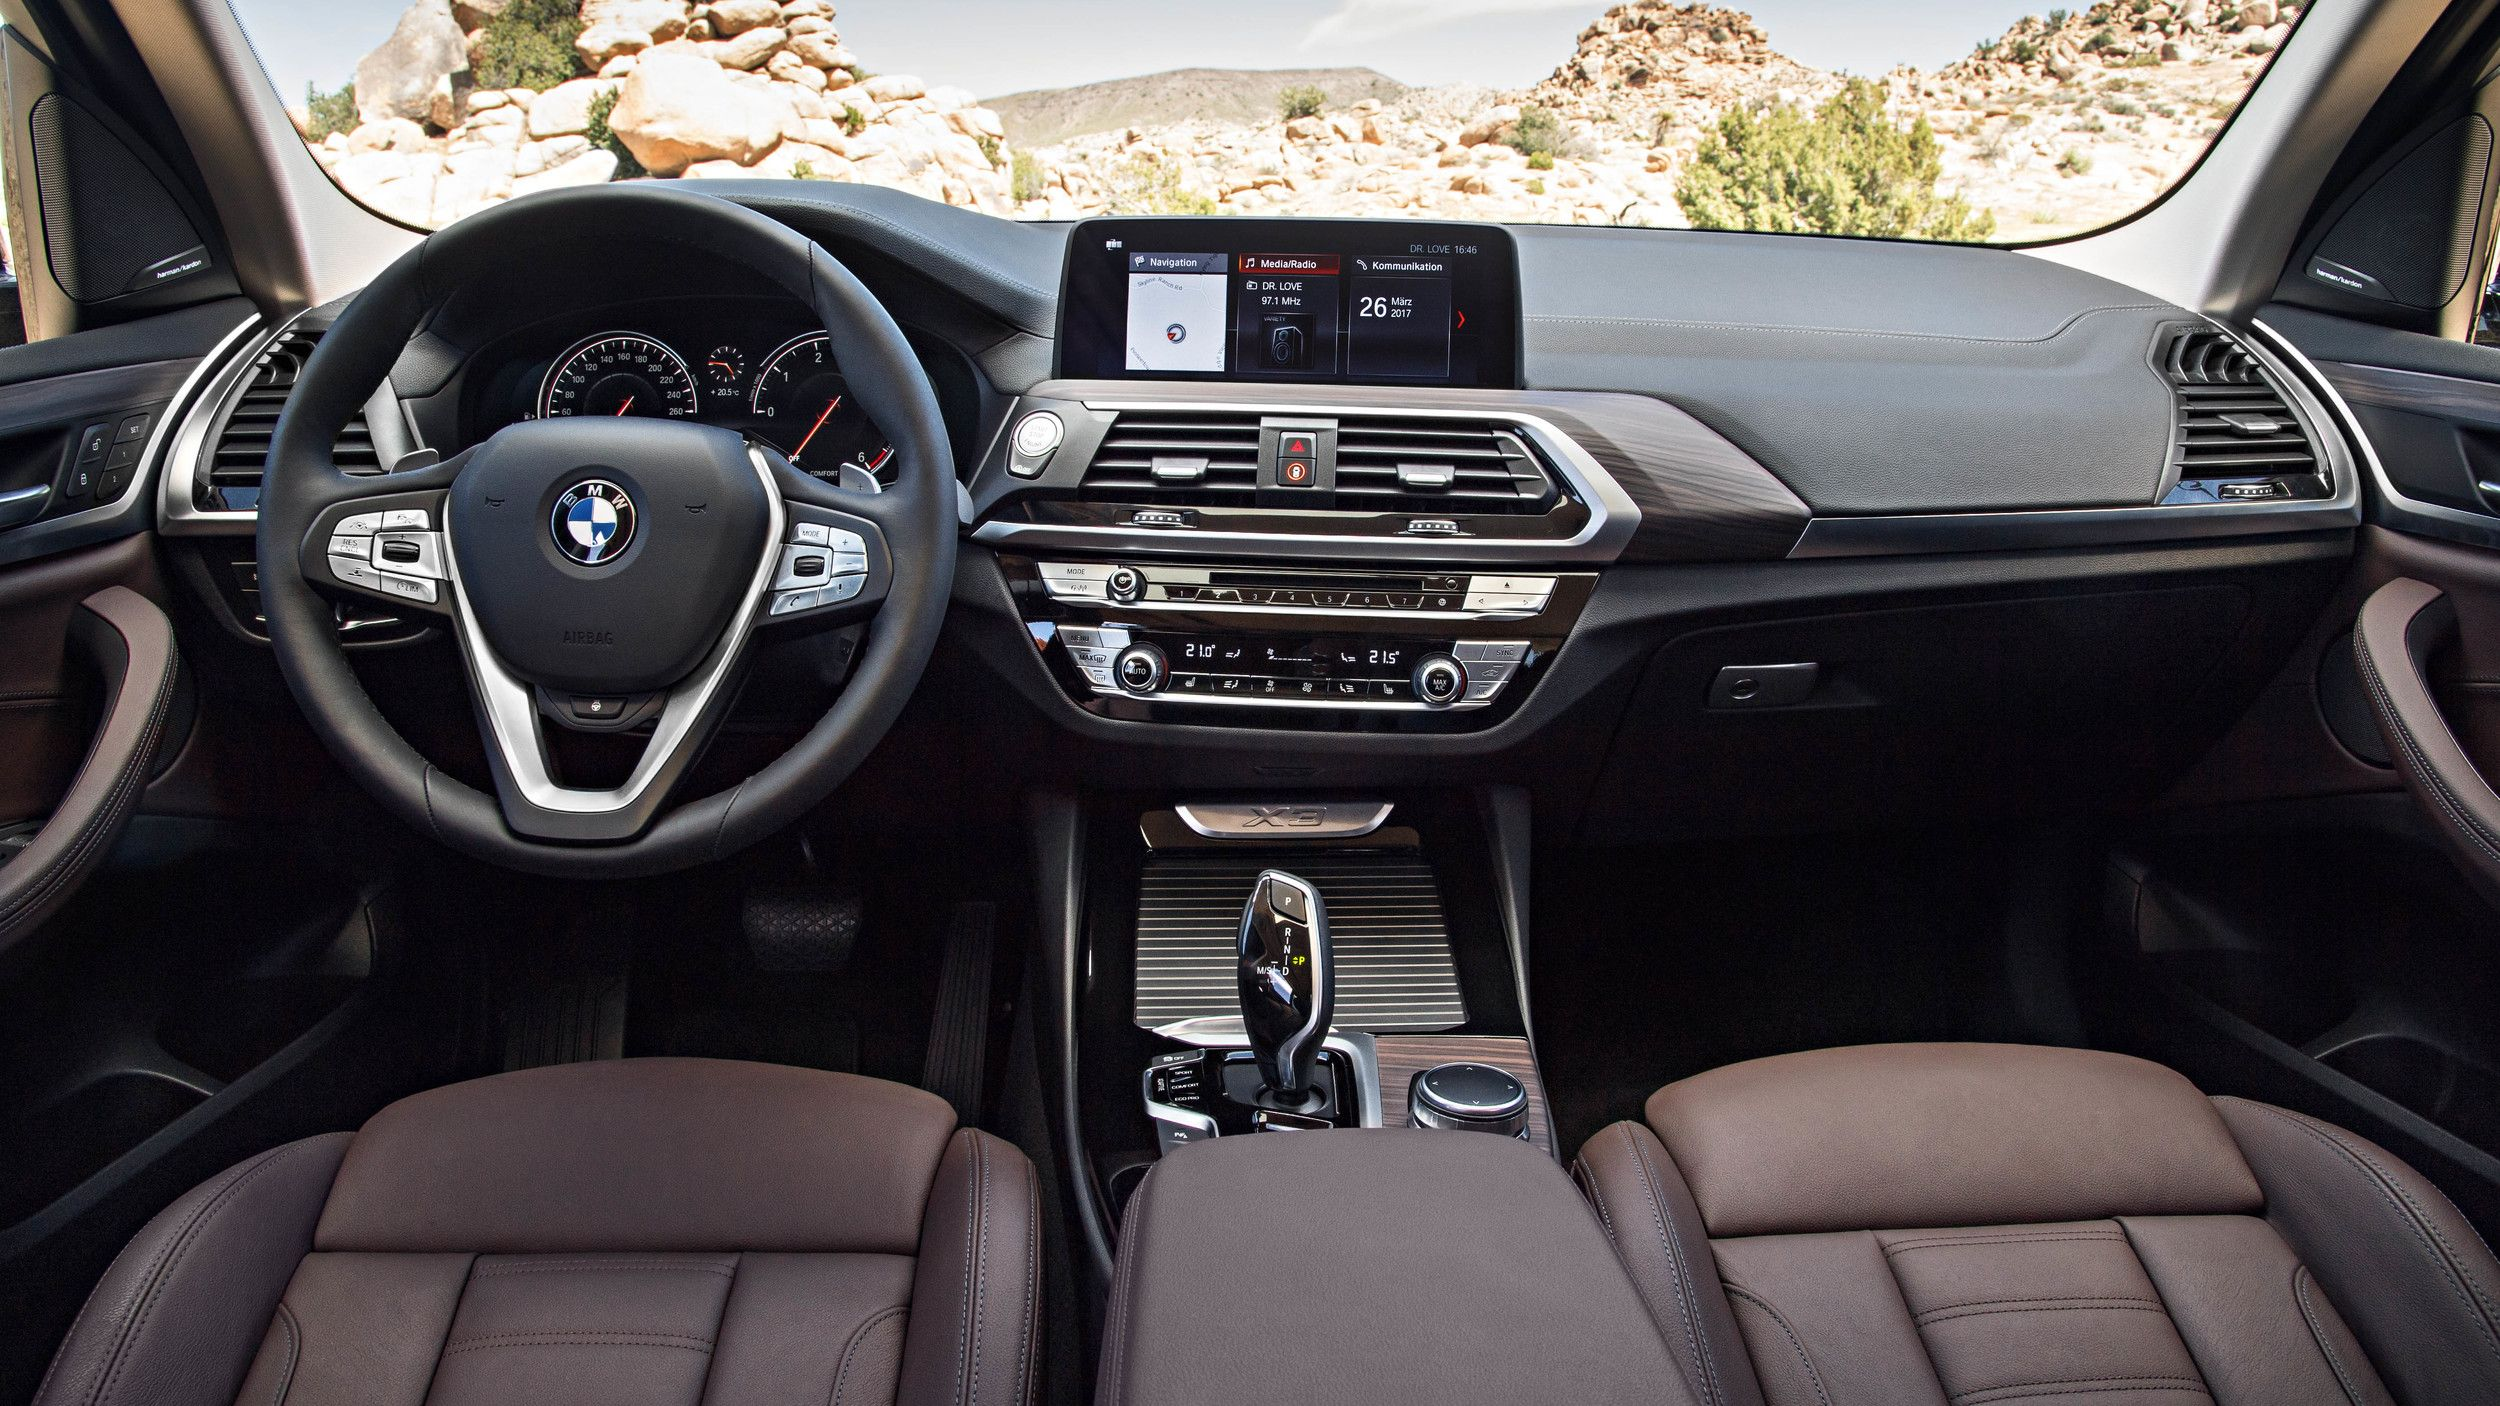 2018 Bmw X3 All New Faster And More Efficient Than Ever Bmw X3 Bmw Bmw Compact